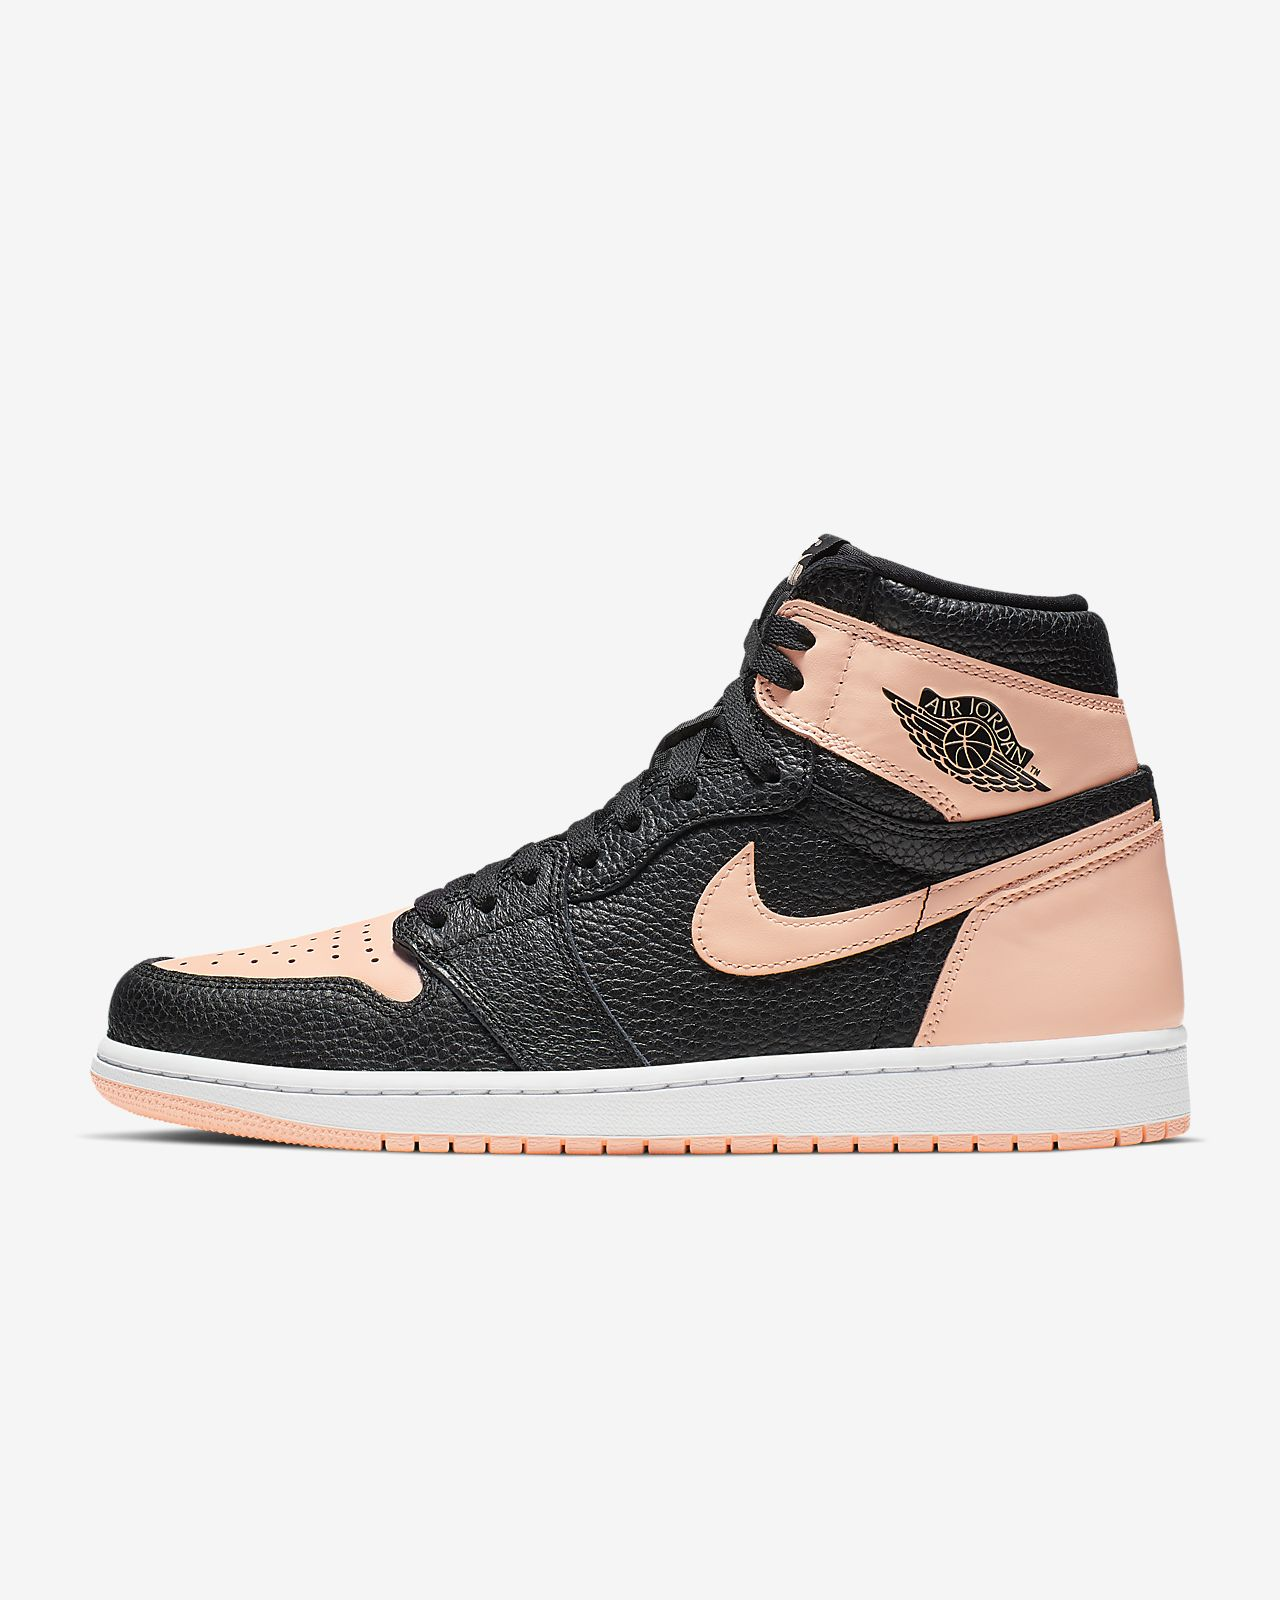 new styles 75638 fd59f ... Air Jordan 1 Retro High OG Shoe